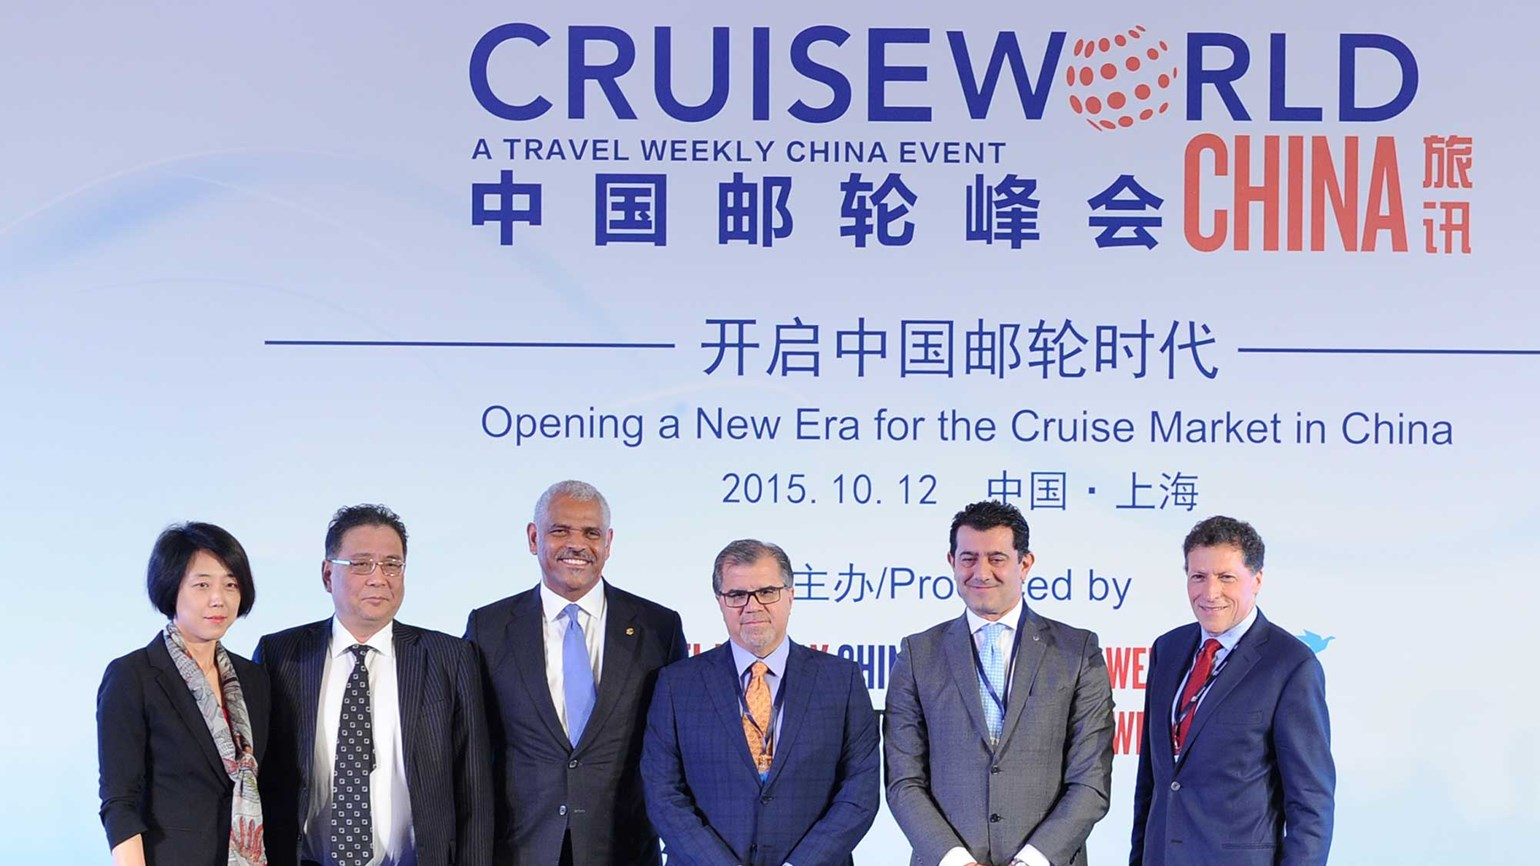 Cruise execs beam optimism about China despite challenges